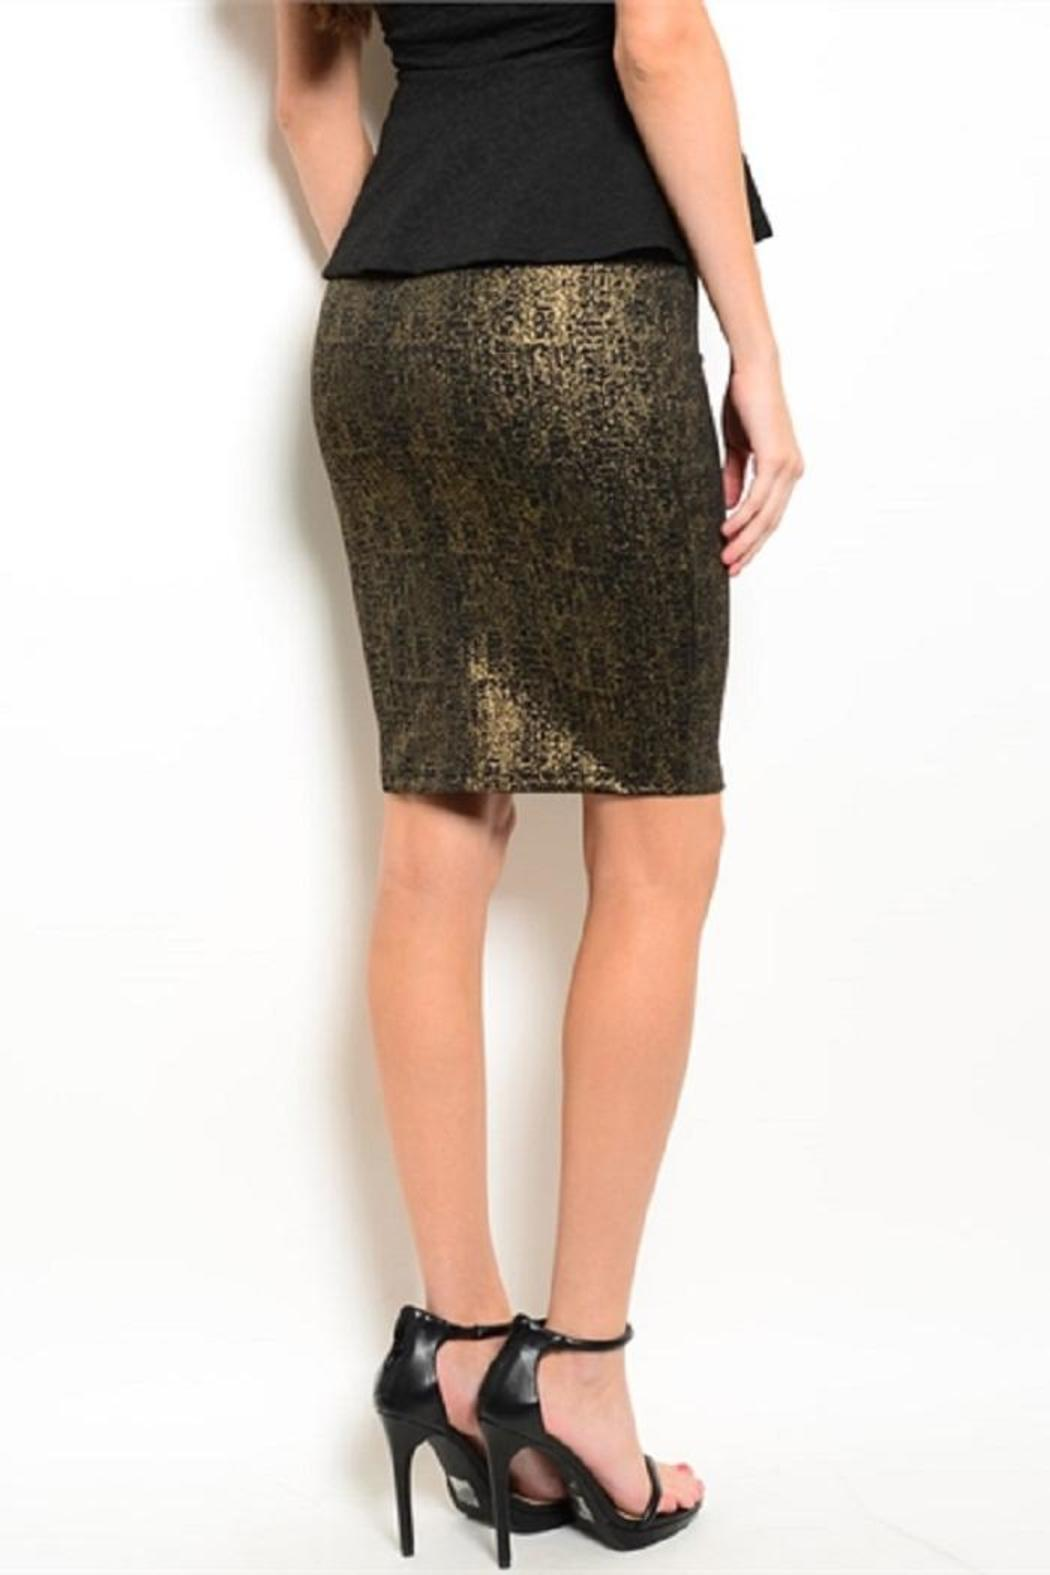 Adore Clothes & More Black Gold Skirt from Washington — Shoptiques